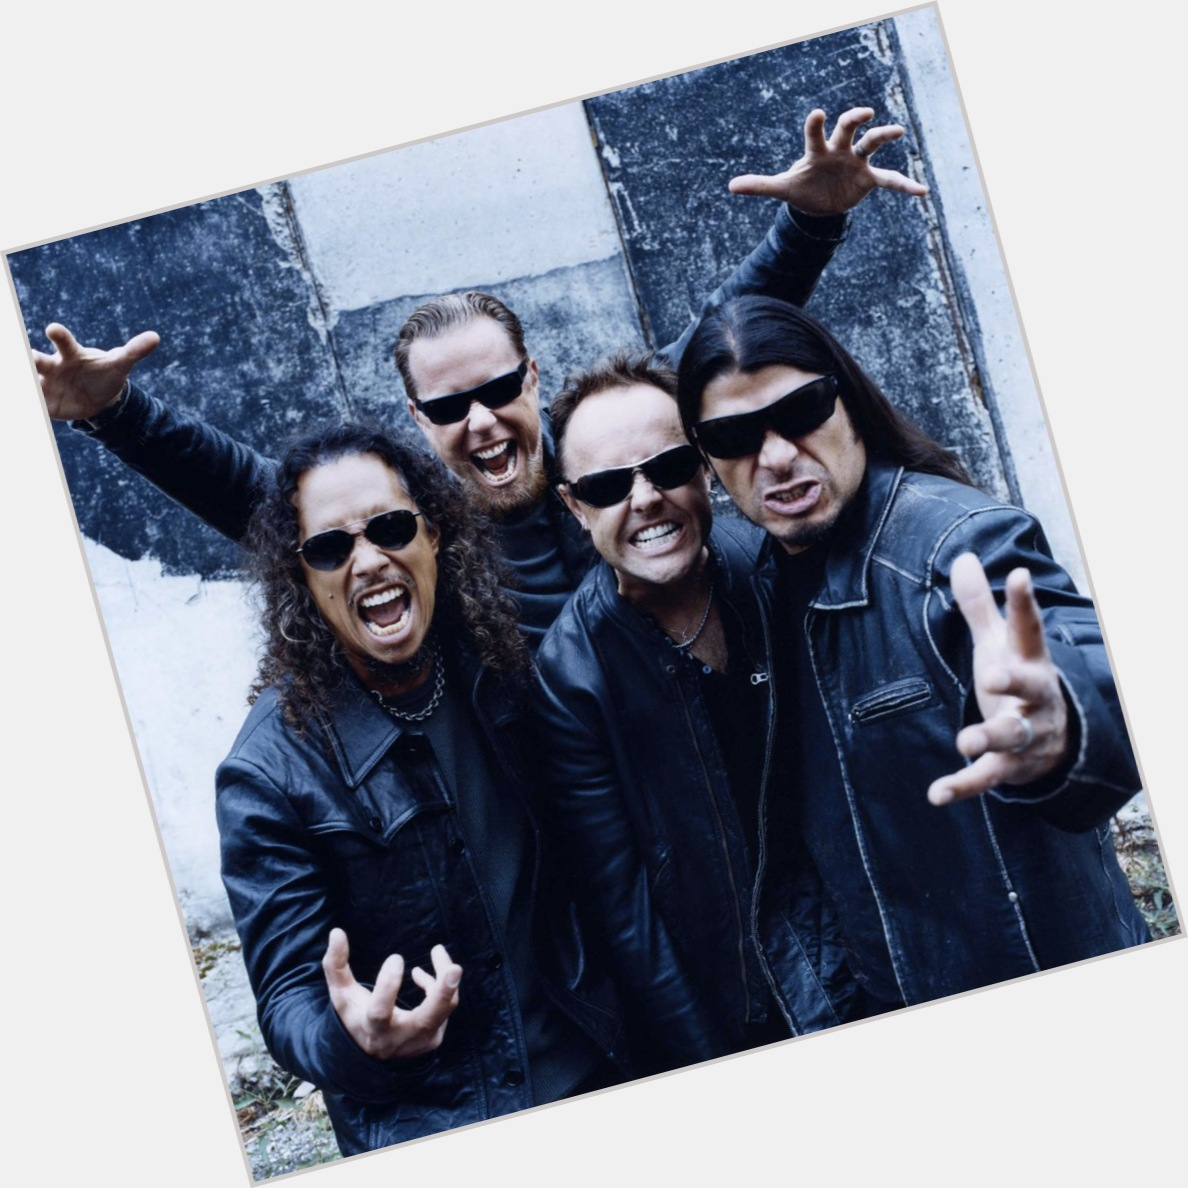 Metallica | Official Site for Man Crush Monday #MCM ...